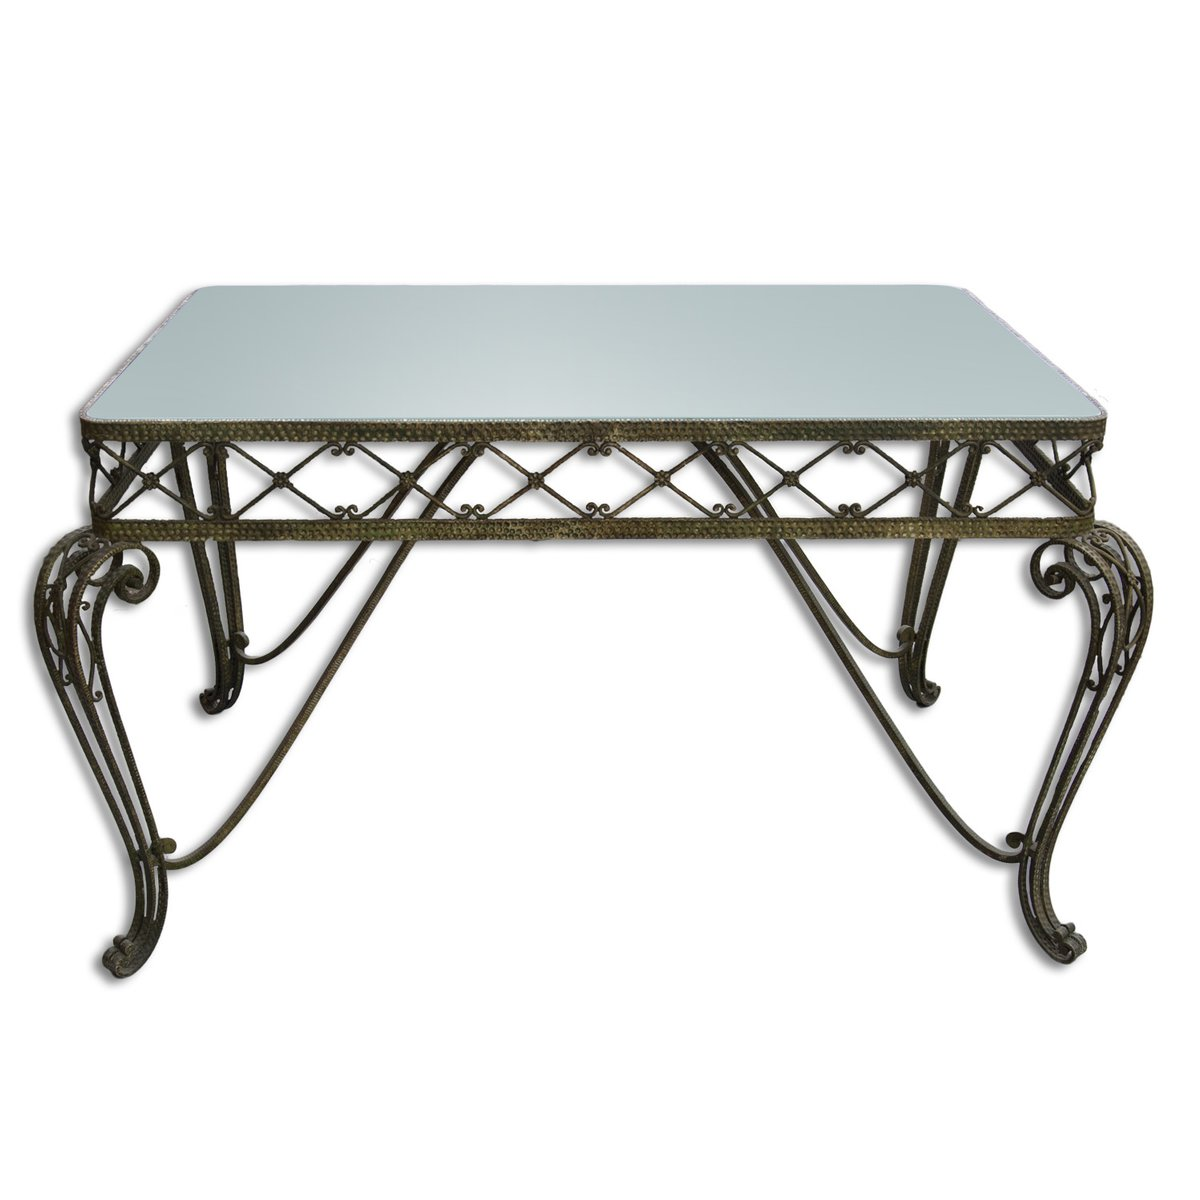 50s retro console table - photo #4